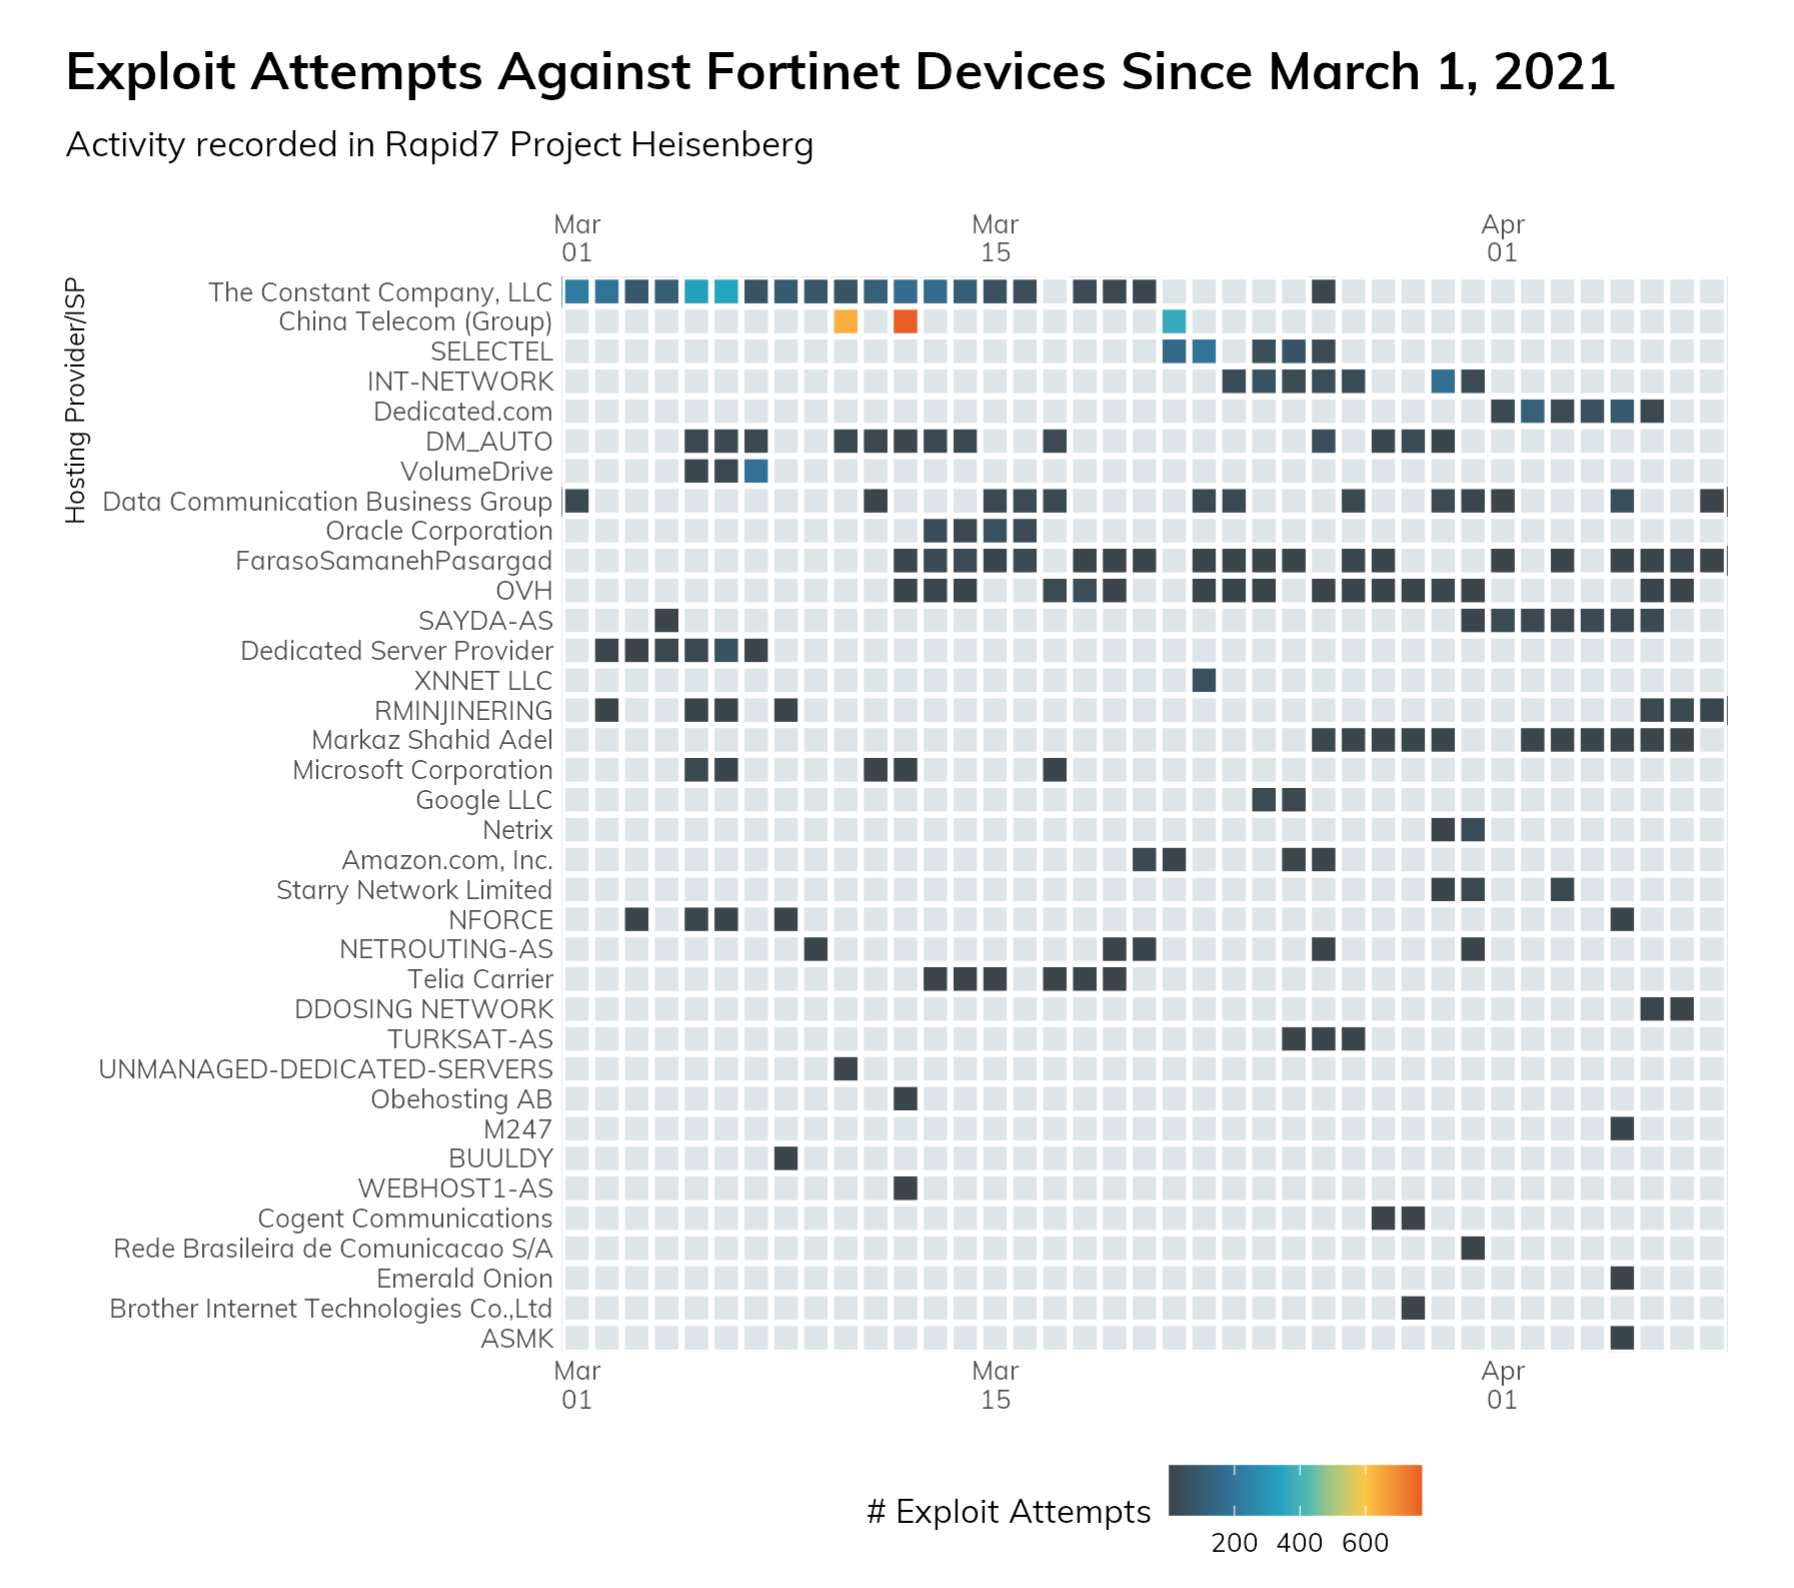 Image showing exploit attempts against Fortinet Devices since March 1, 2021